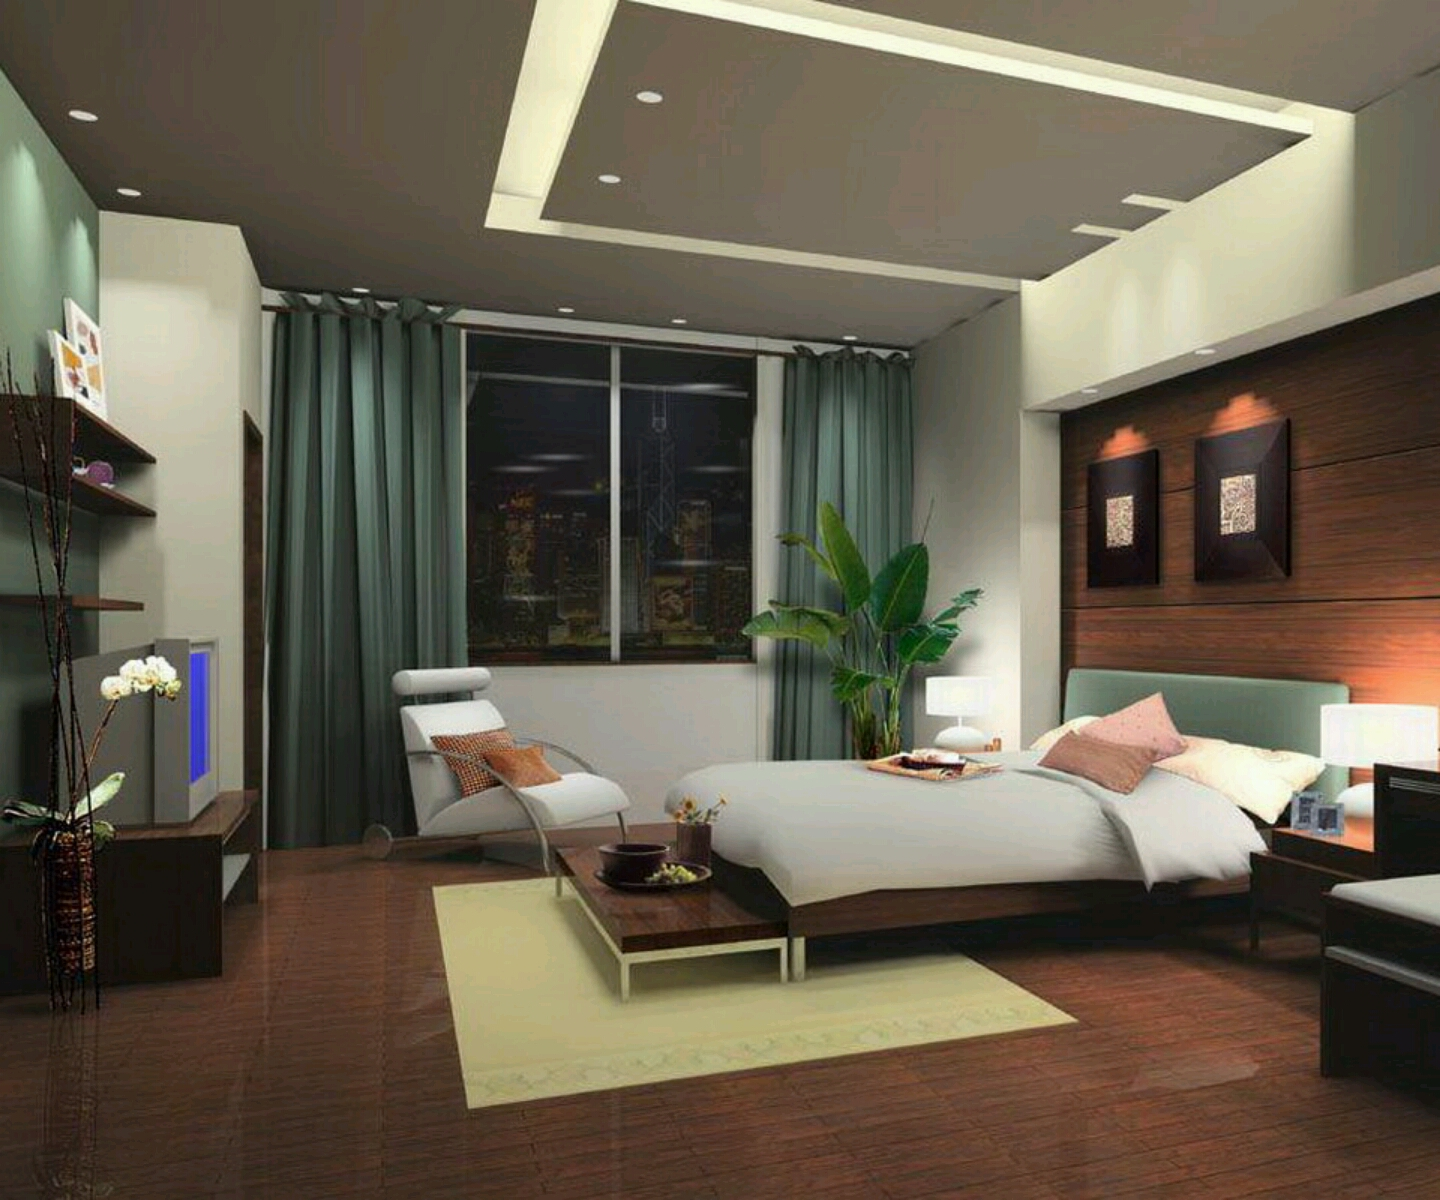 New home designs latest modern bedrooms designs best ideas for Bedroom inspiration